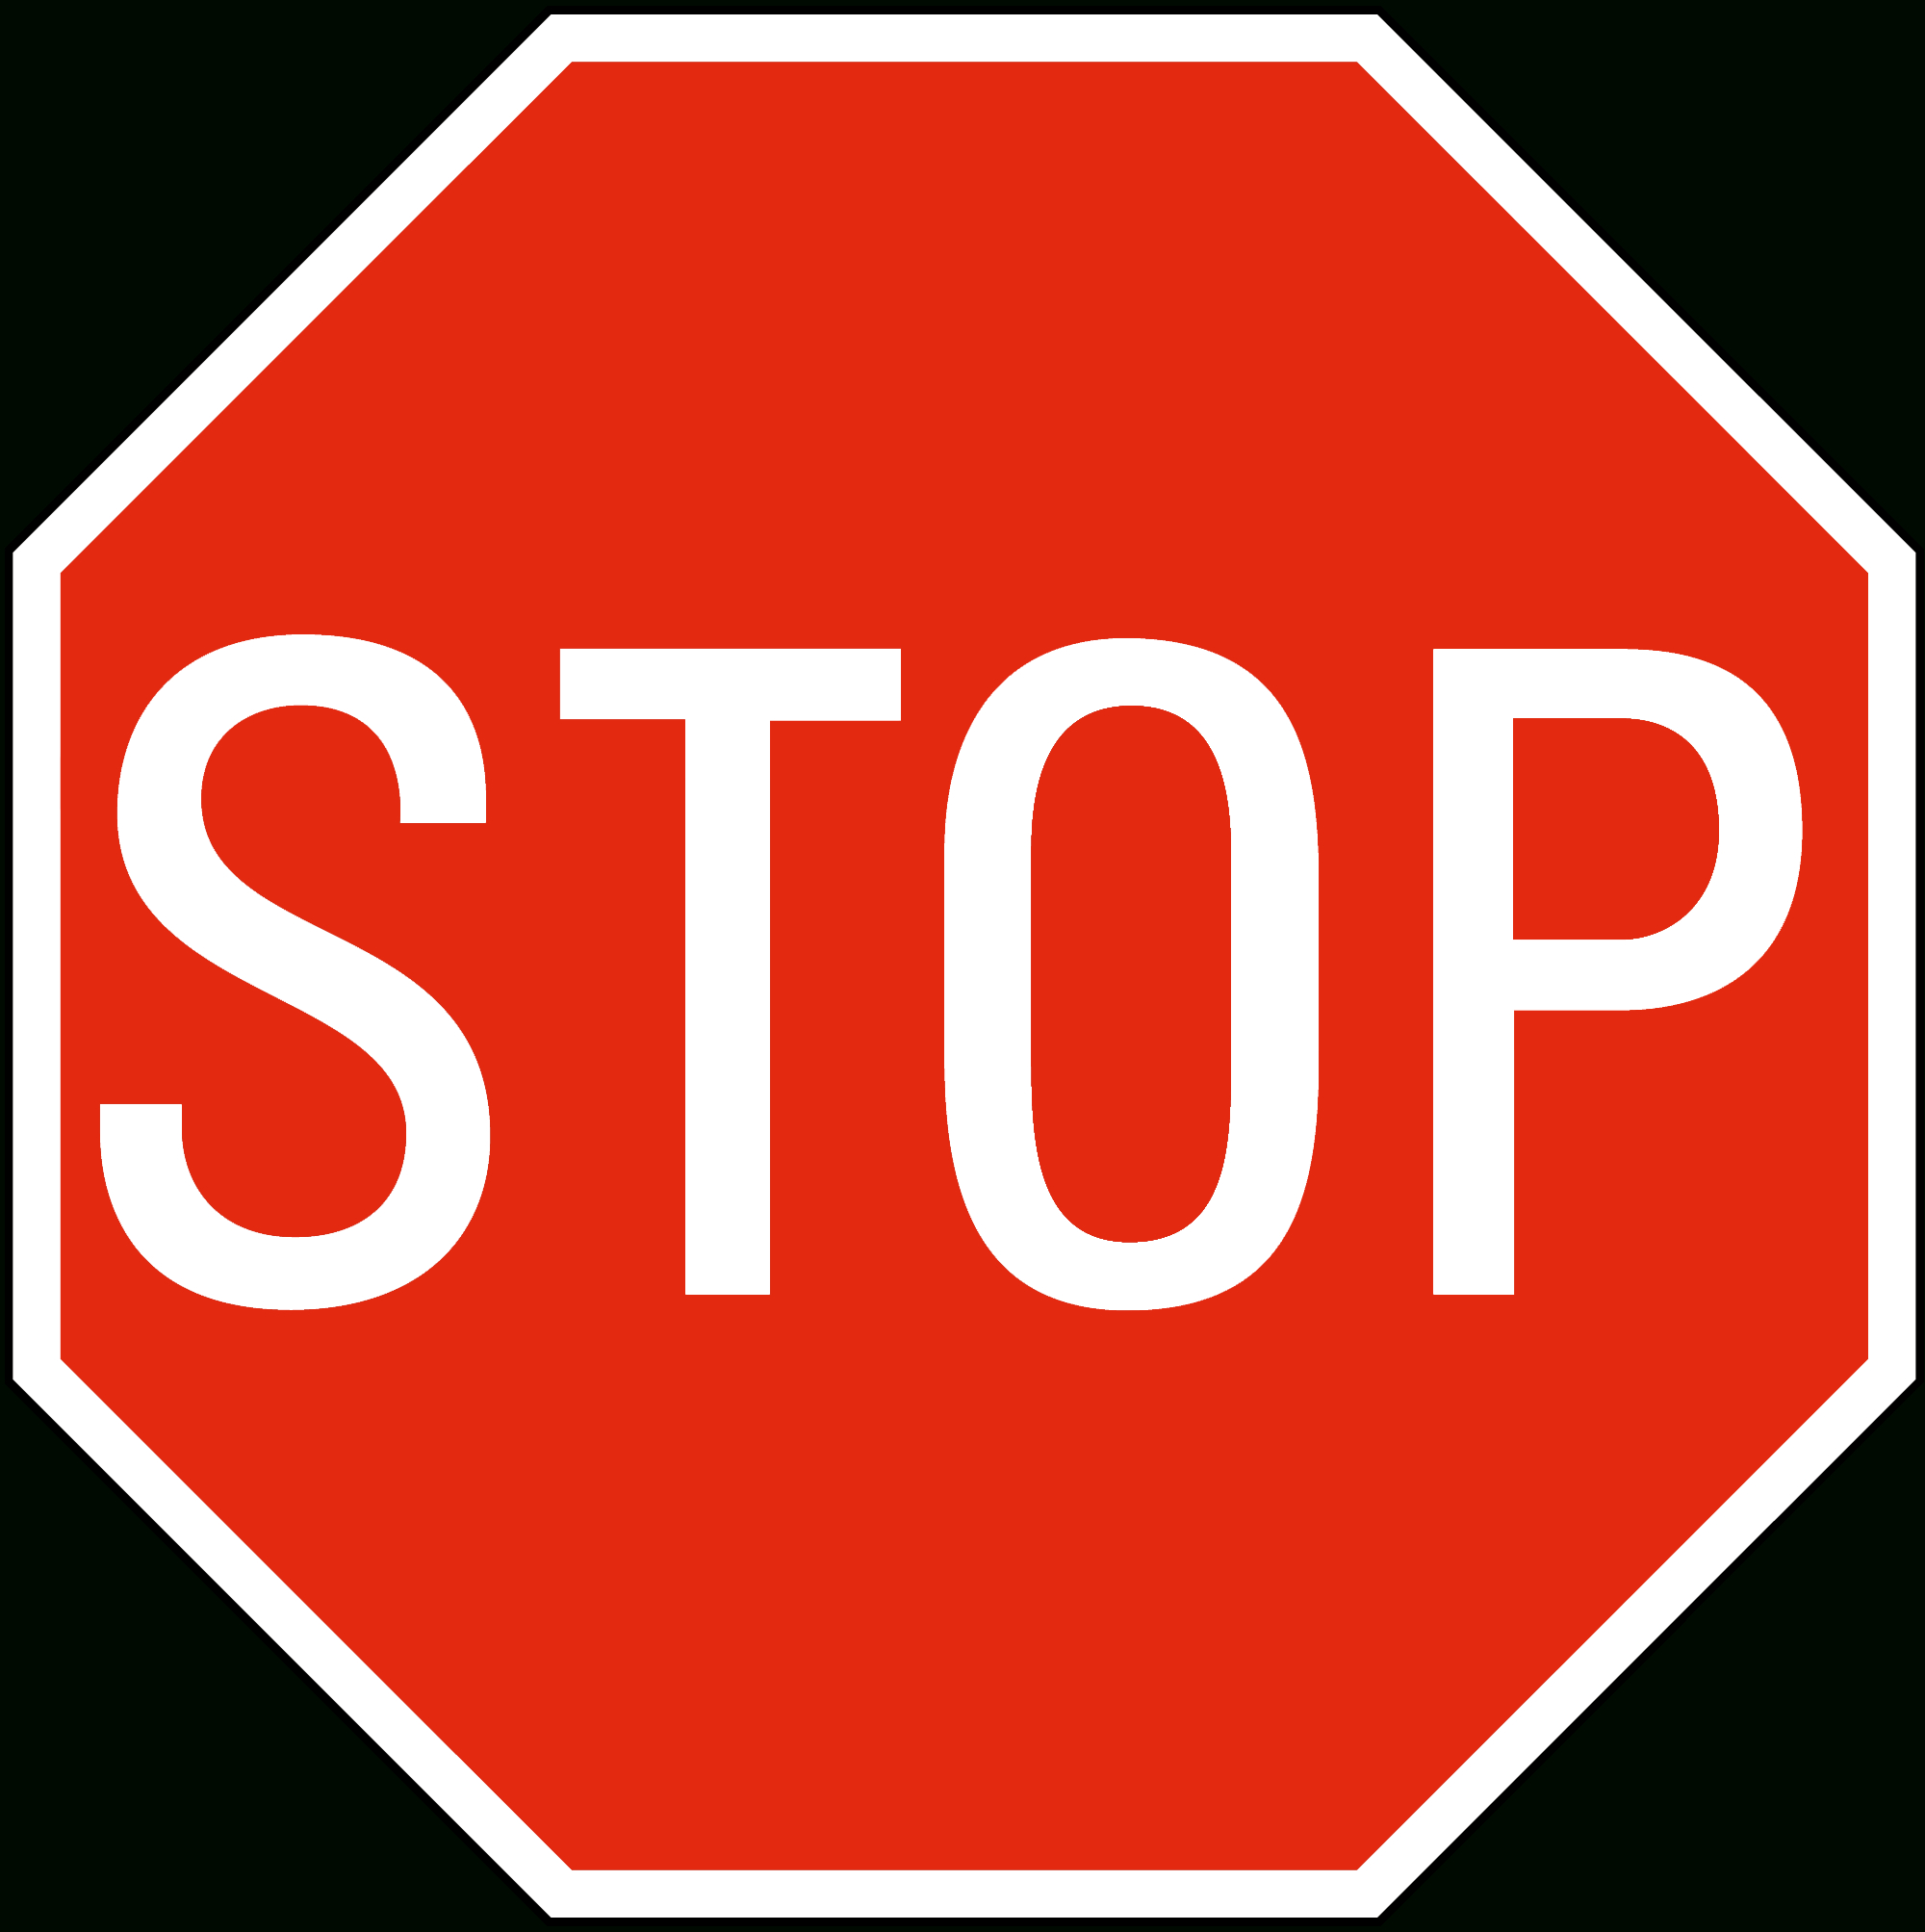 Free Printable Stop Signs, Download Free Clip Art, Free Clip Art On - Free Printable Sign Templates